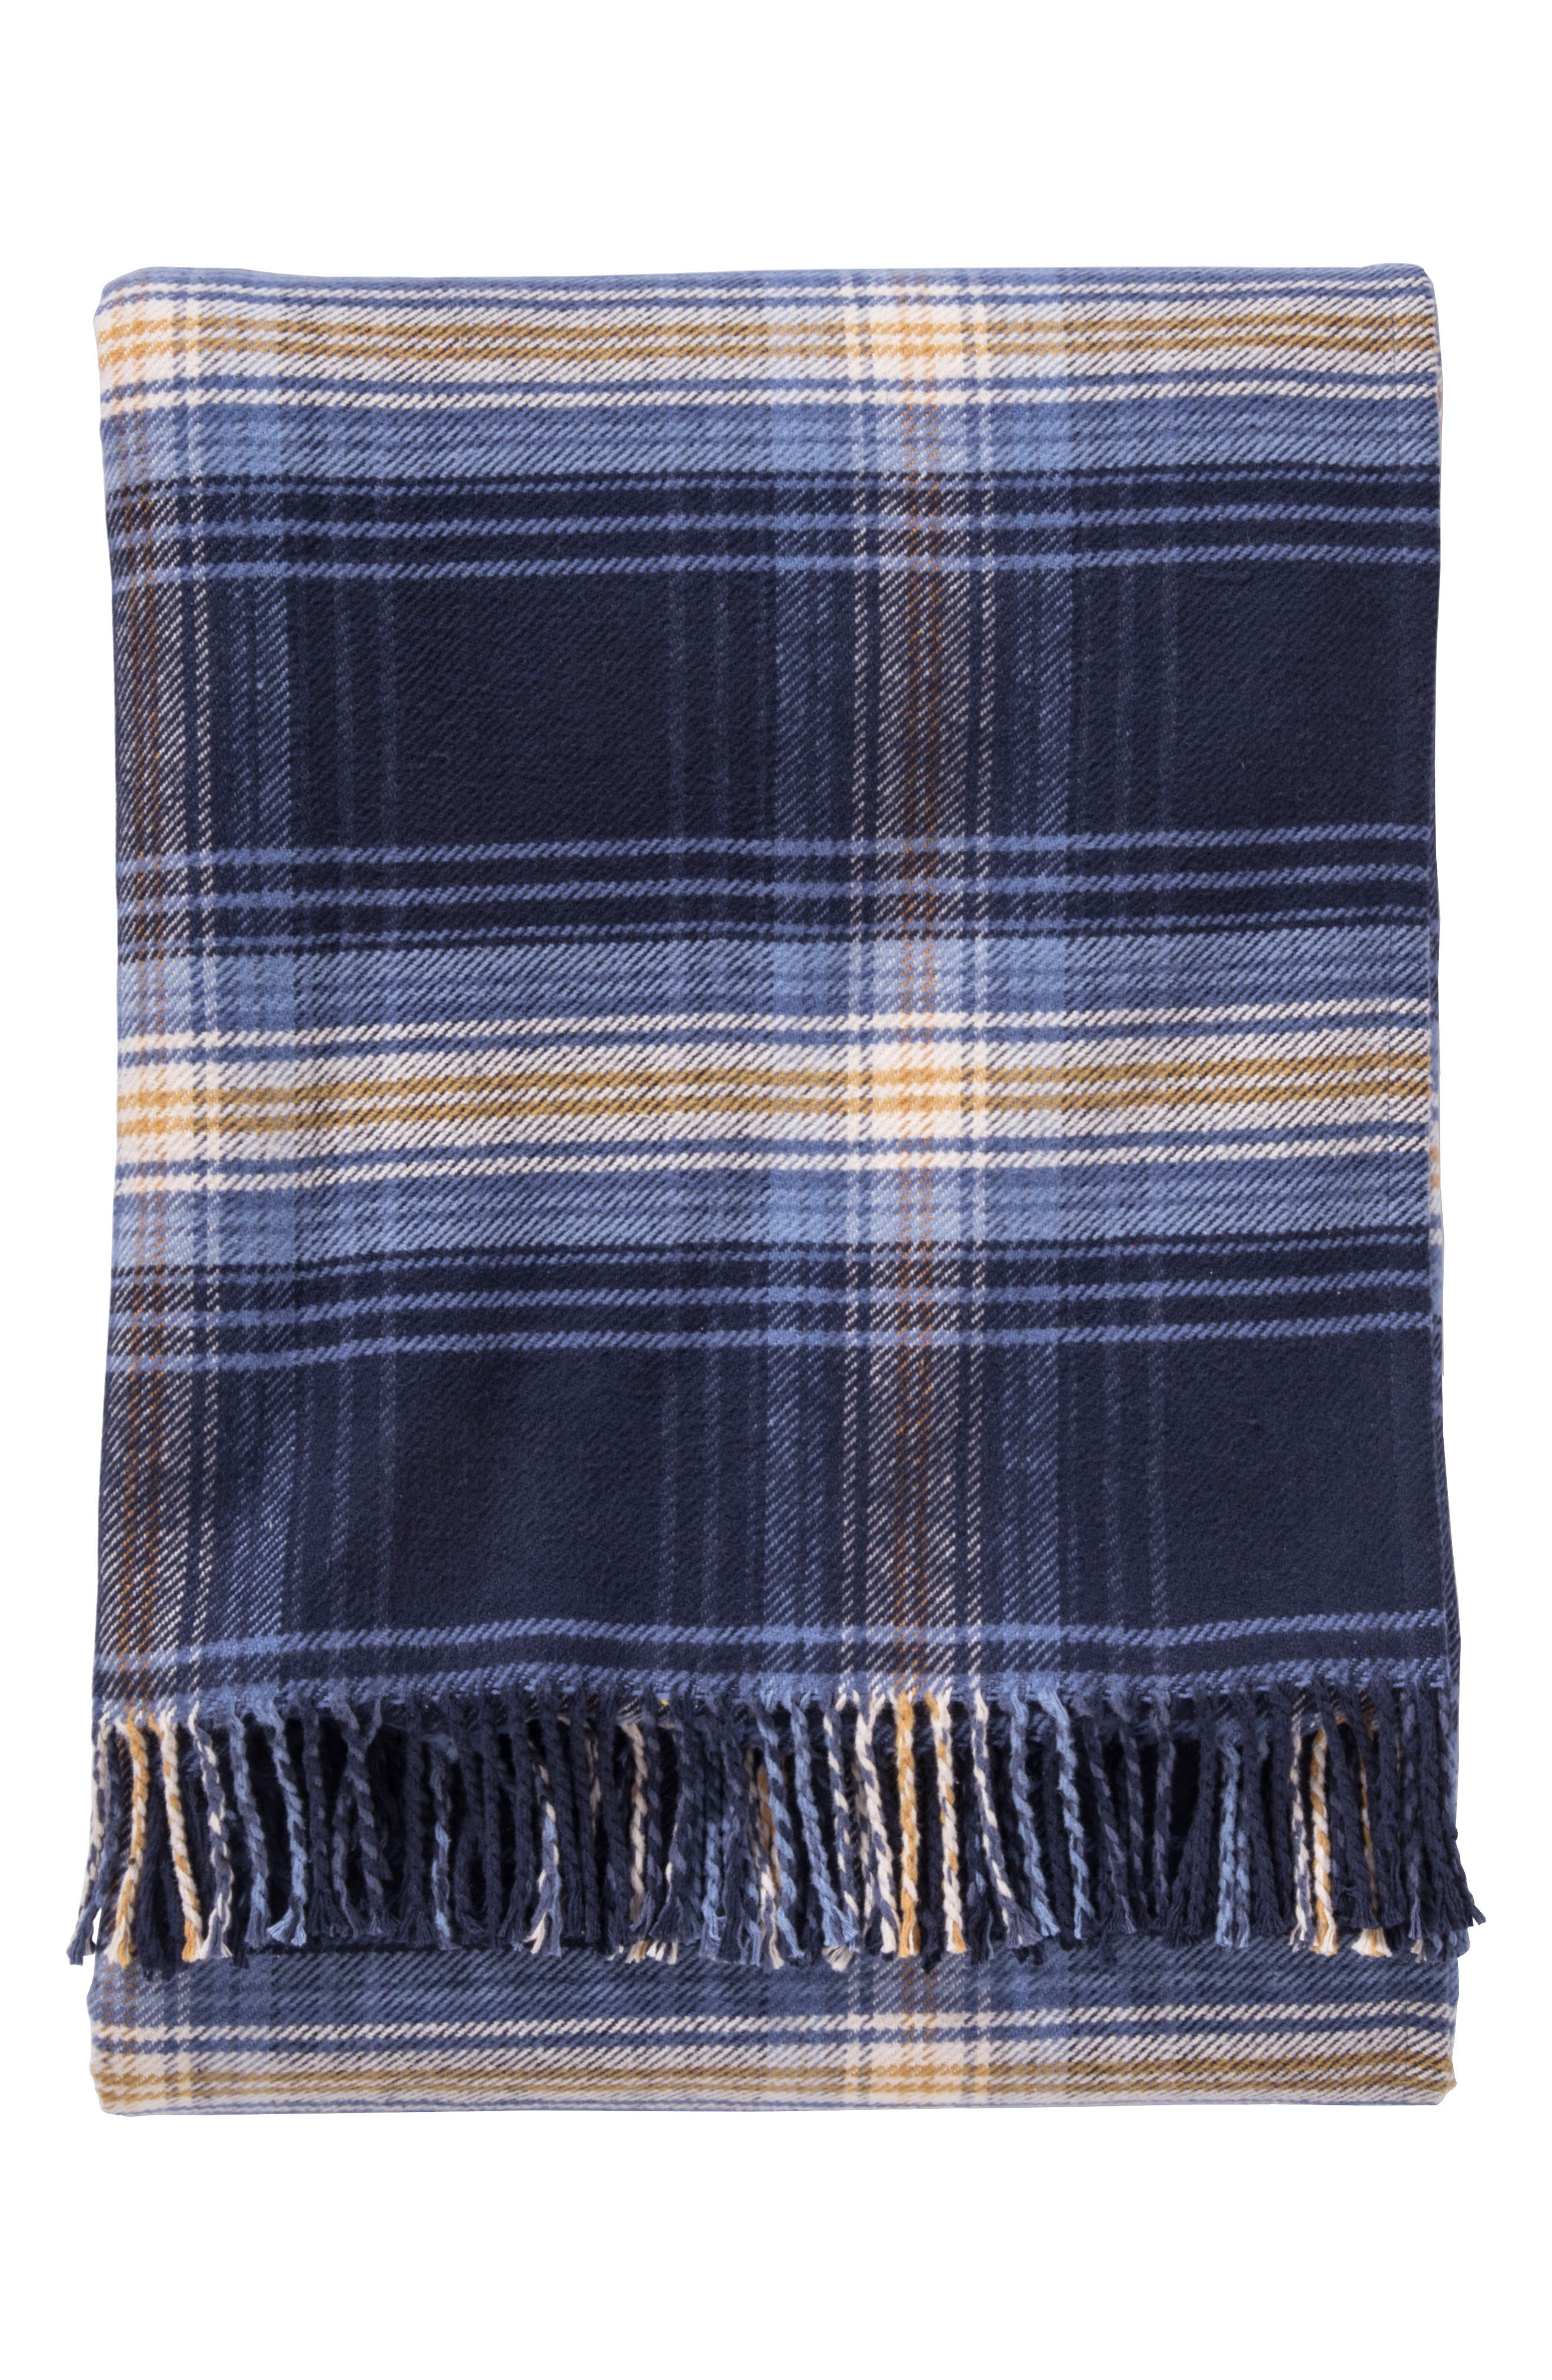 Ombre Plaid Throw,                             Main thumbnail 1, color,                             BLUE AND GOLD